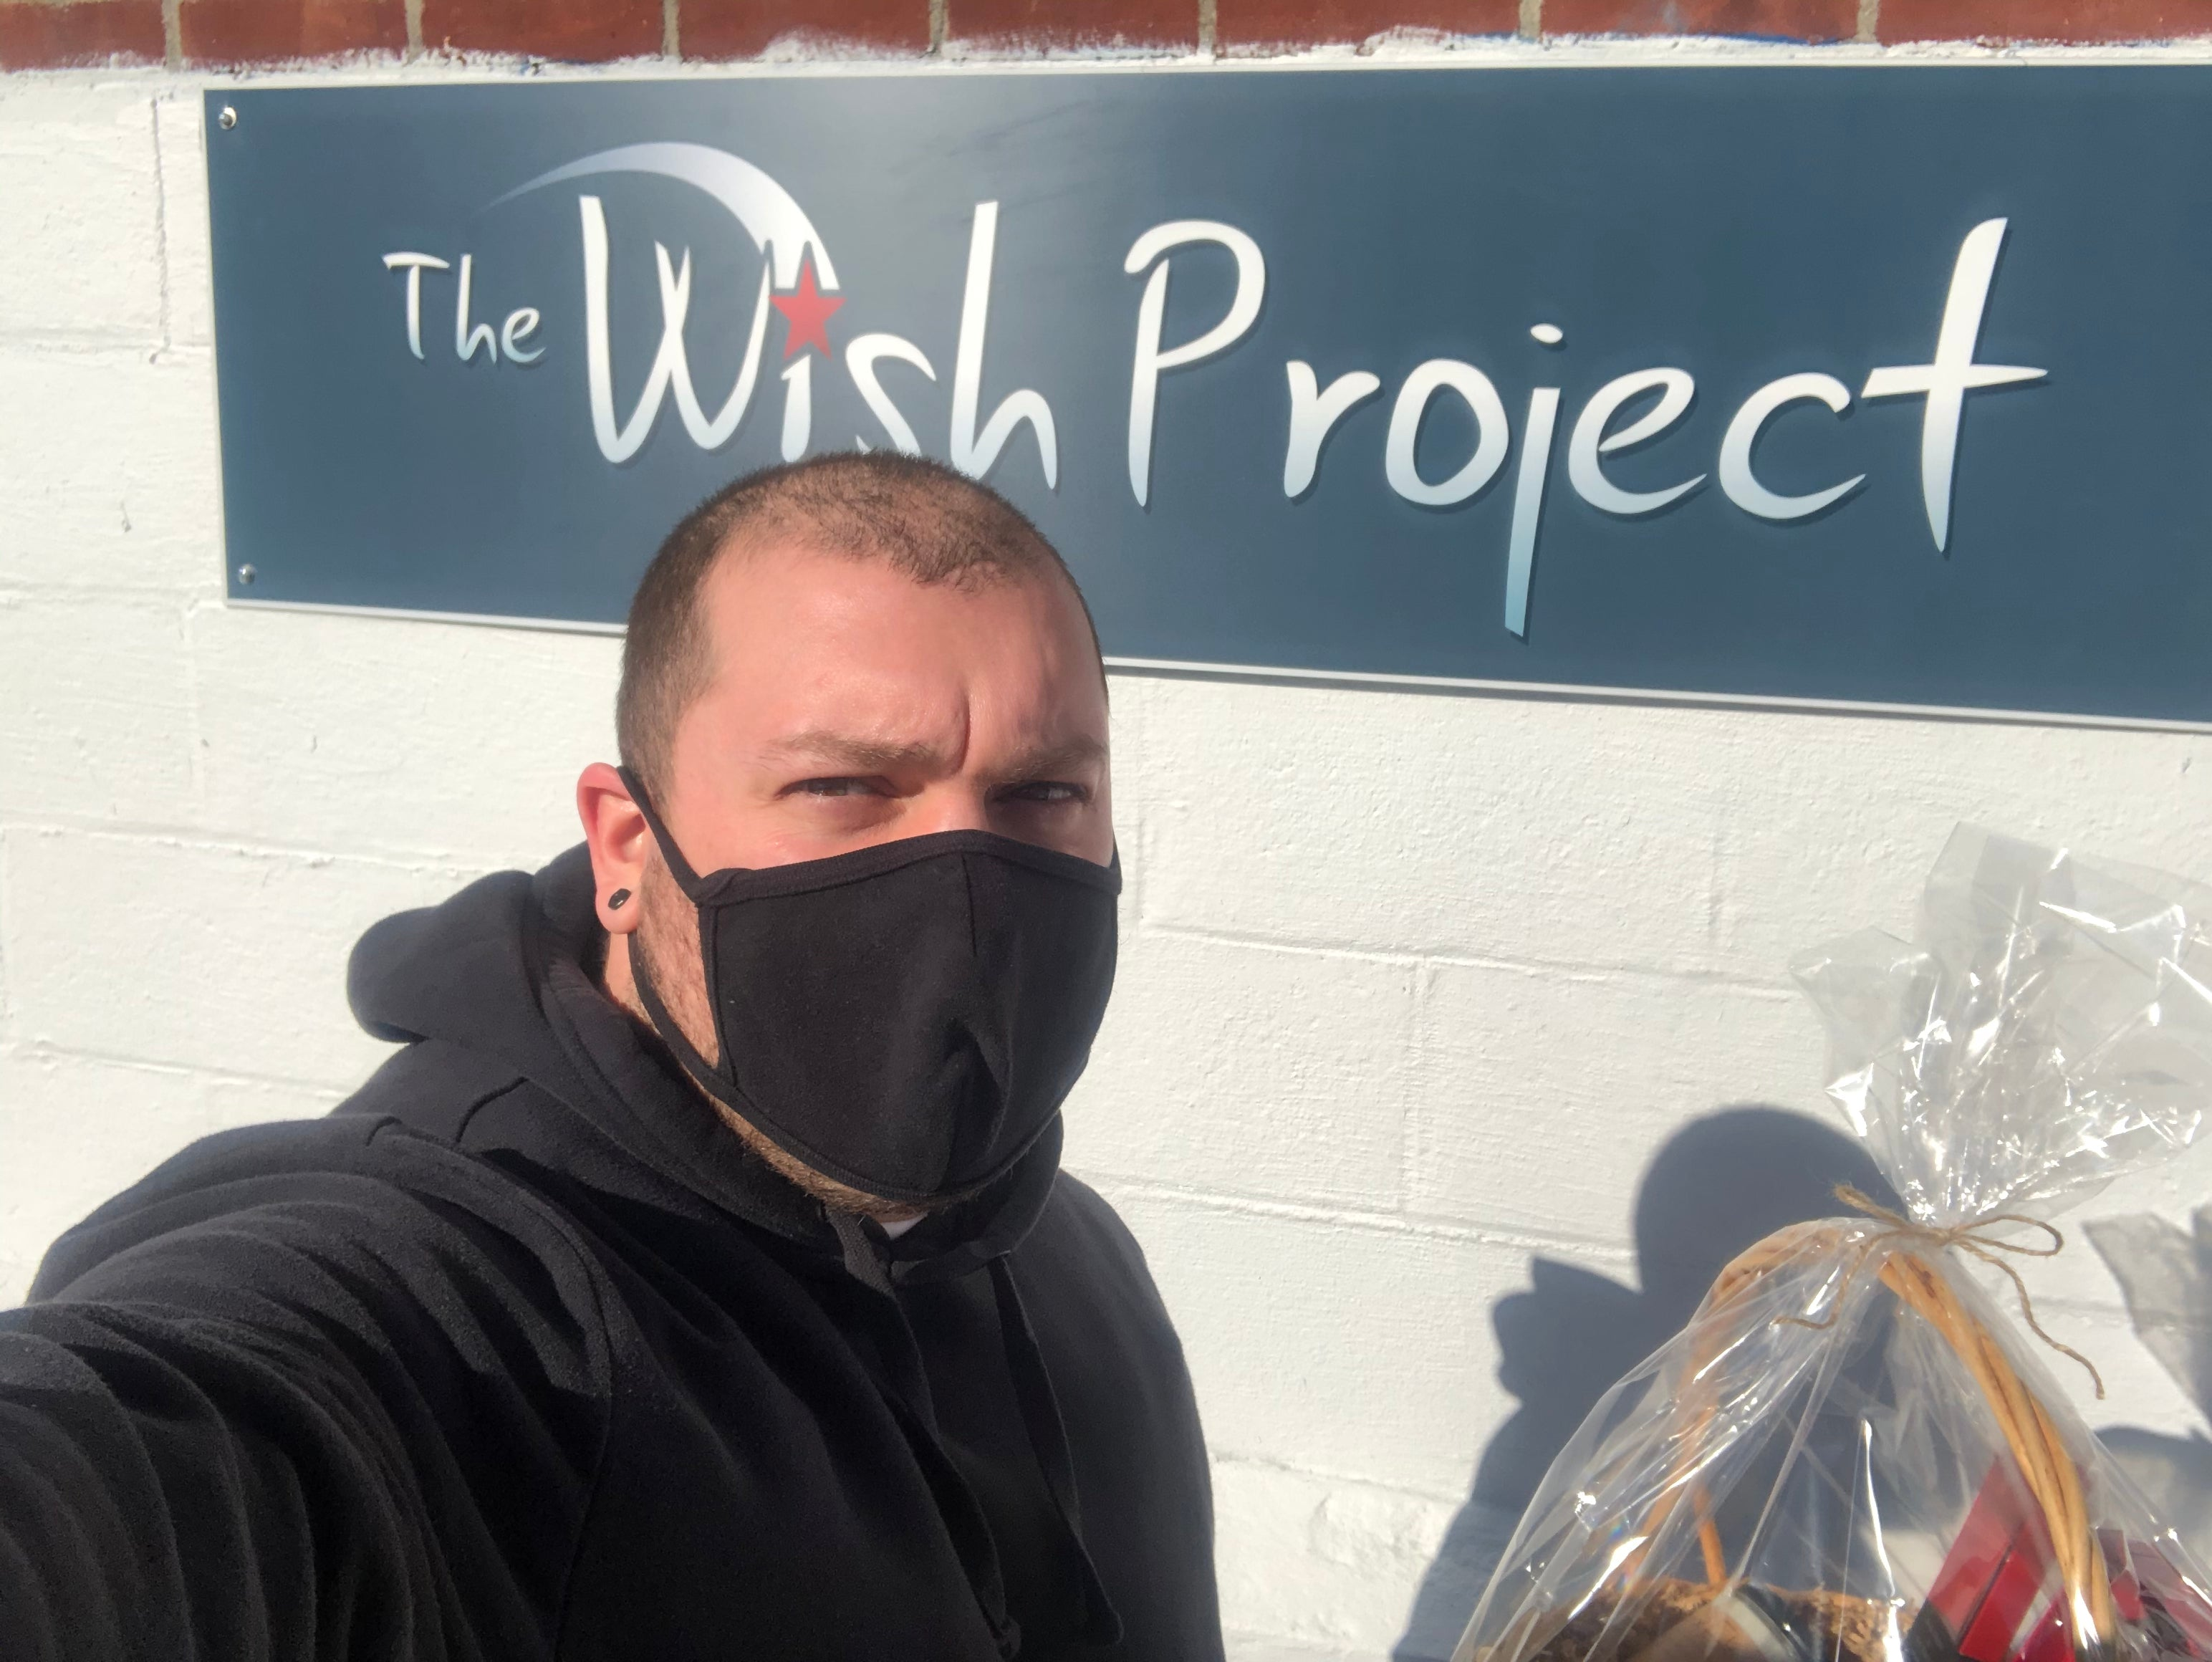 Fern x Flow owner, Joe Wing, in front of The Wish Project's sign outside their Chelmsford, MA location.